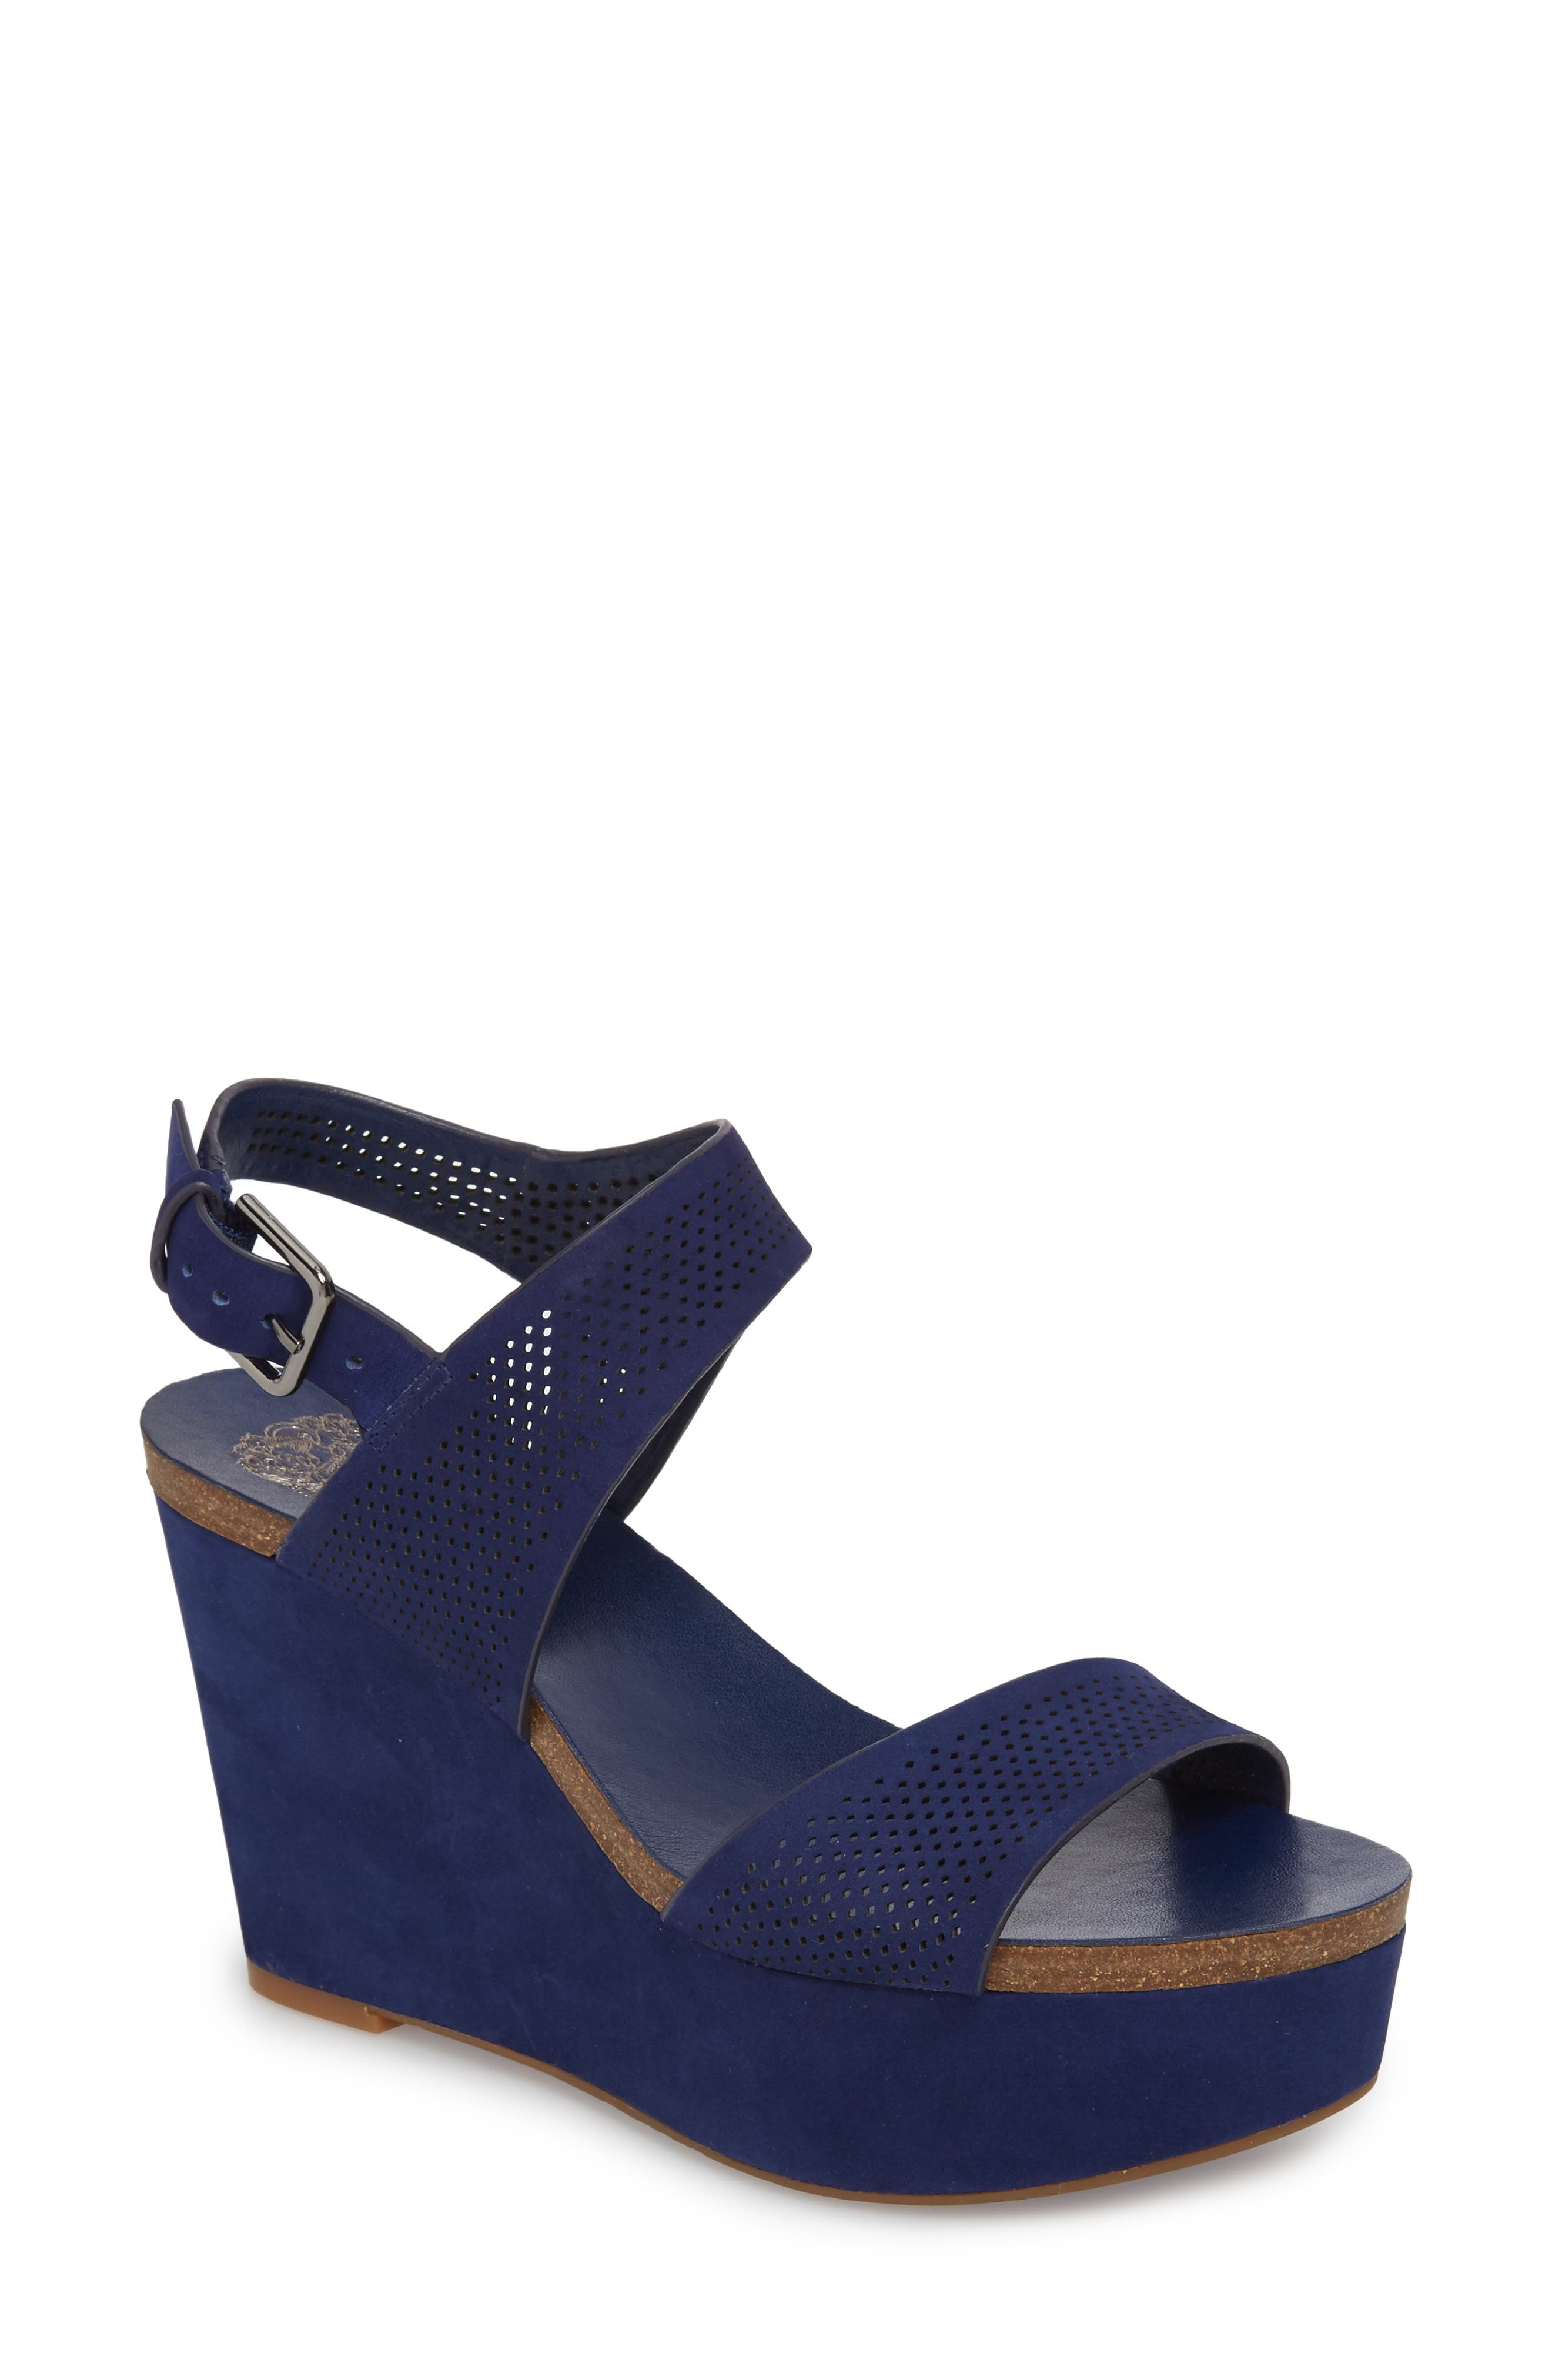 Vessinta Platform Wedge,                         Main,                         color, Moody Blue Leather